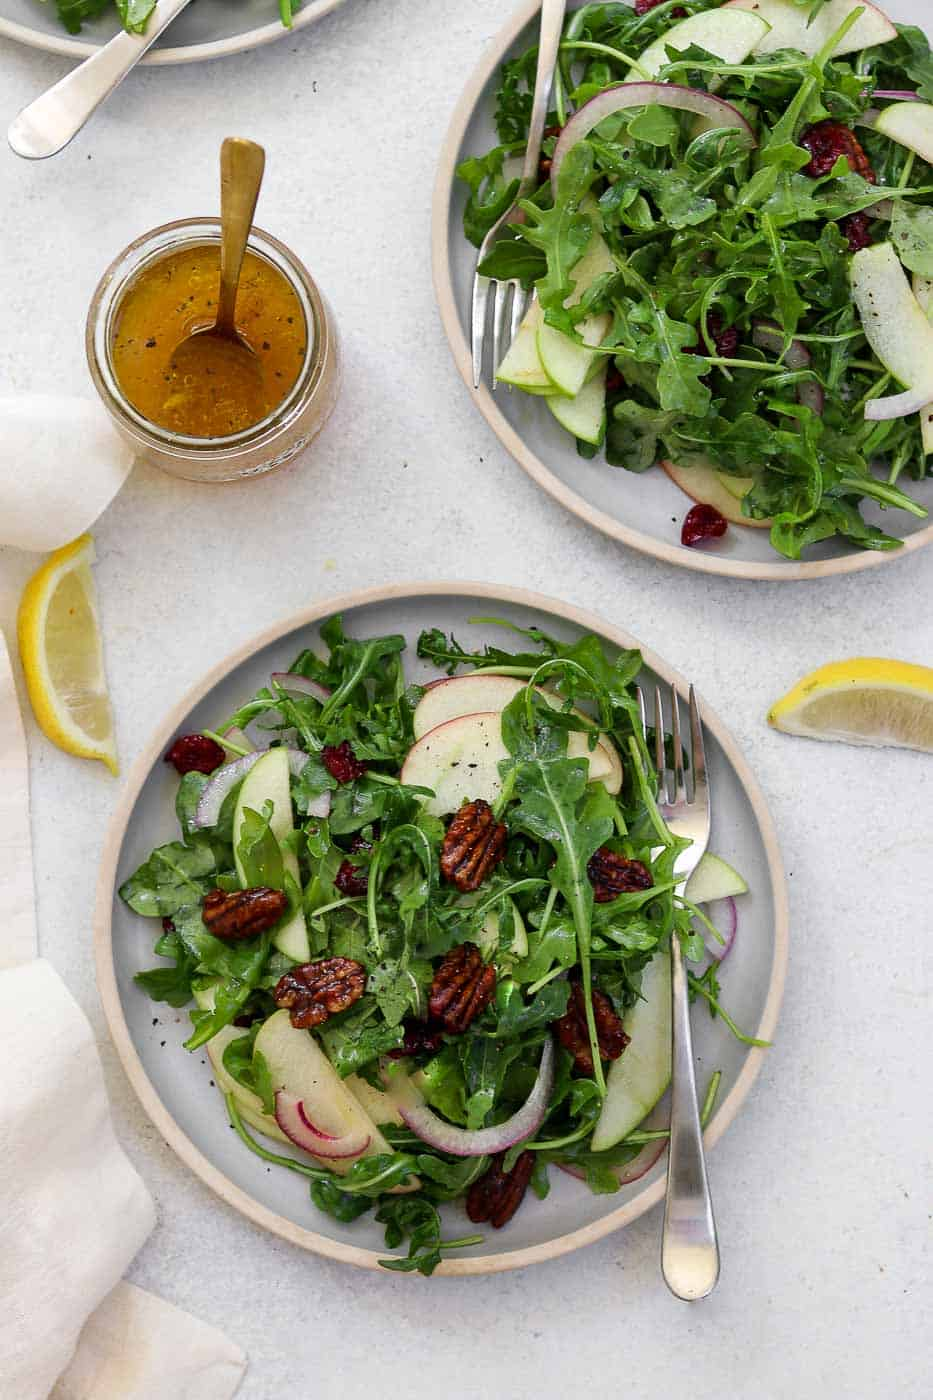 Two plates with apple arugula salad and lemon wedges.